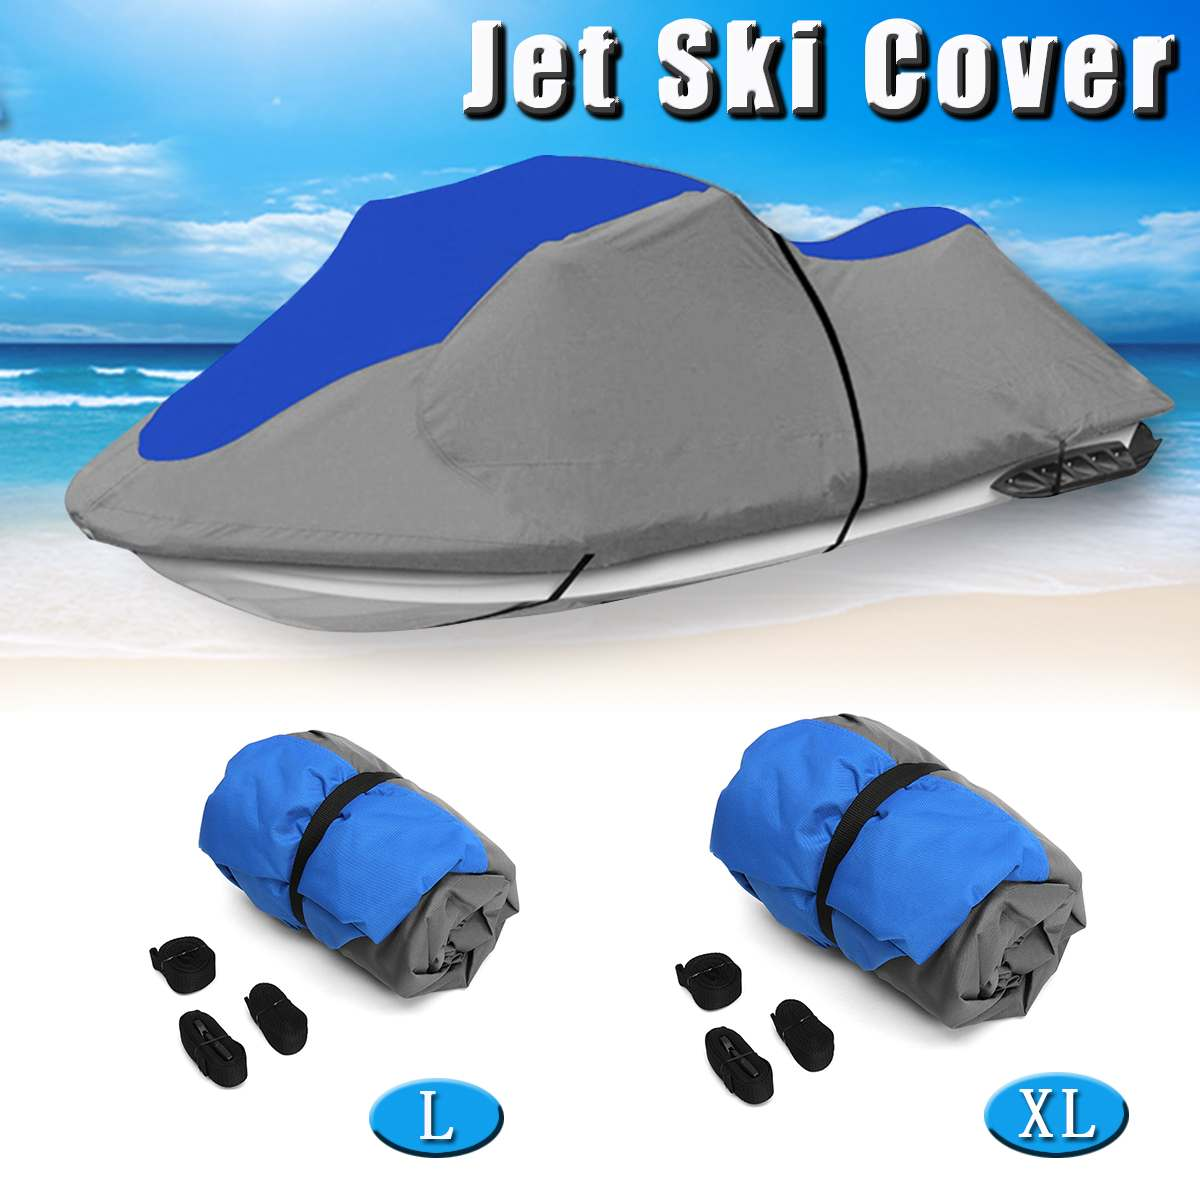 L/XL 600D Solution Dyed 8.1oz Oxford Boat Cover For Universal 3 Person PWC Jet Ski,116 To 135